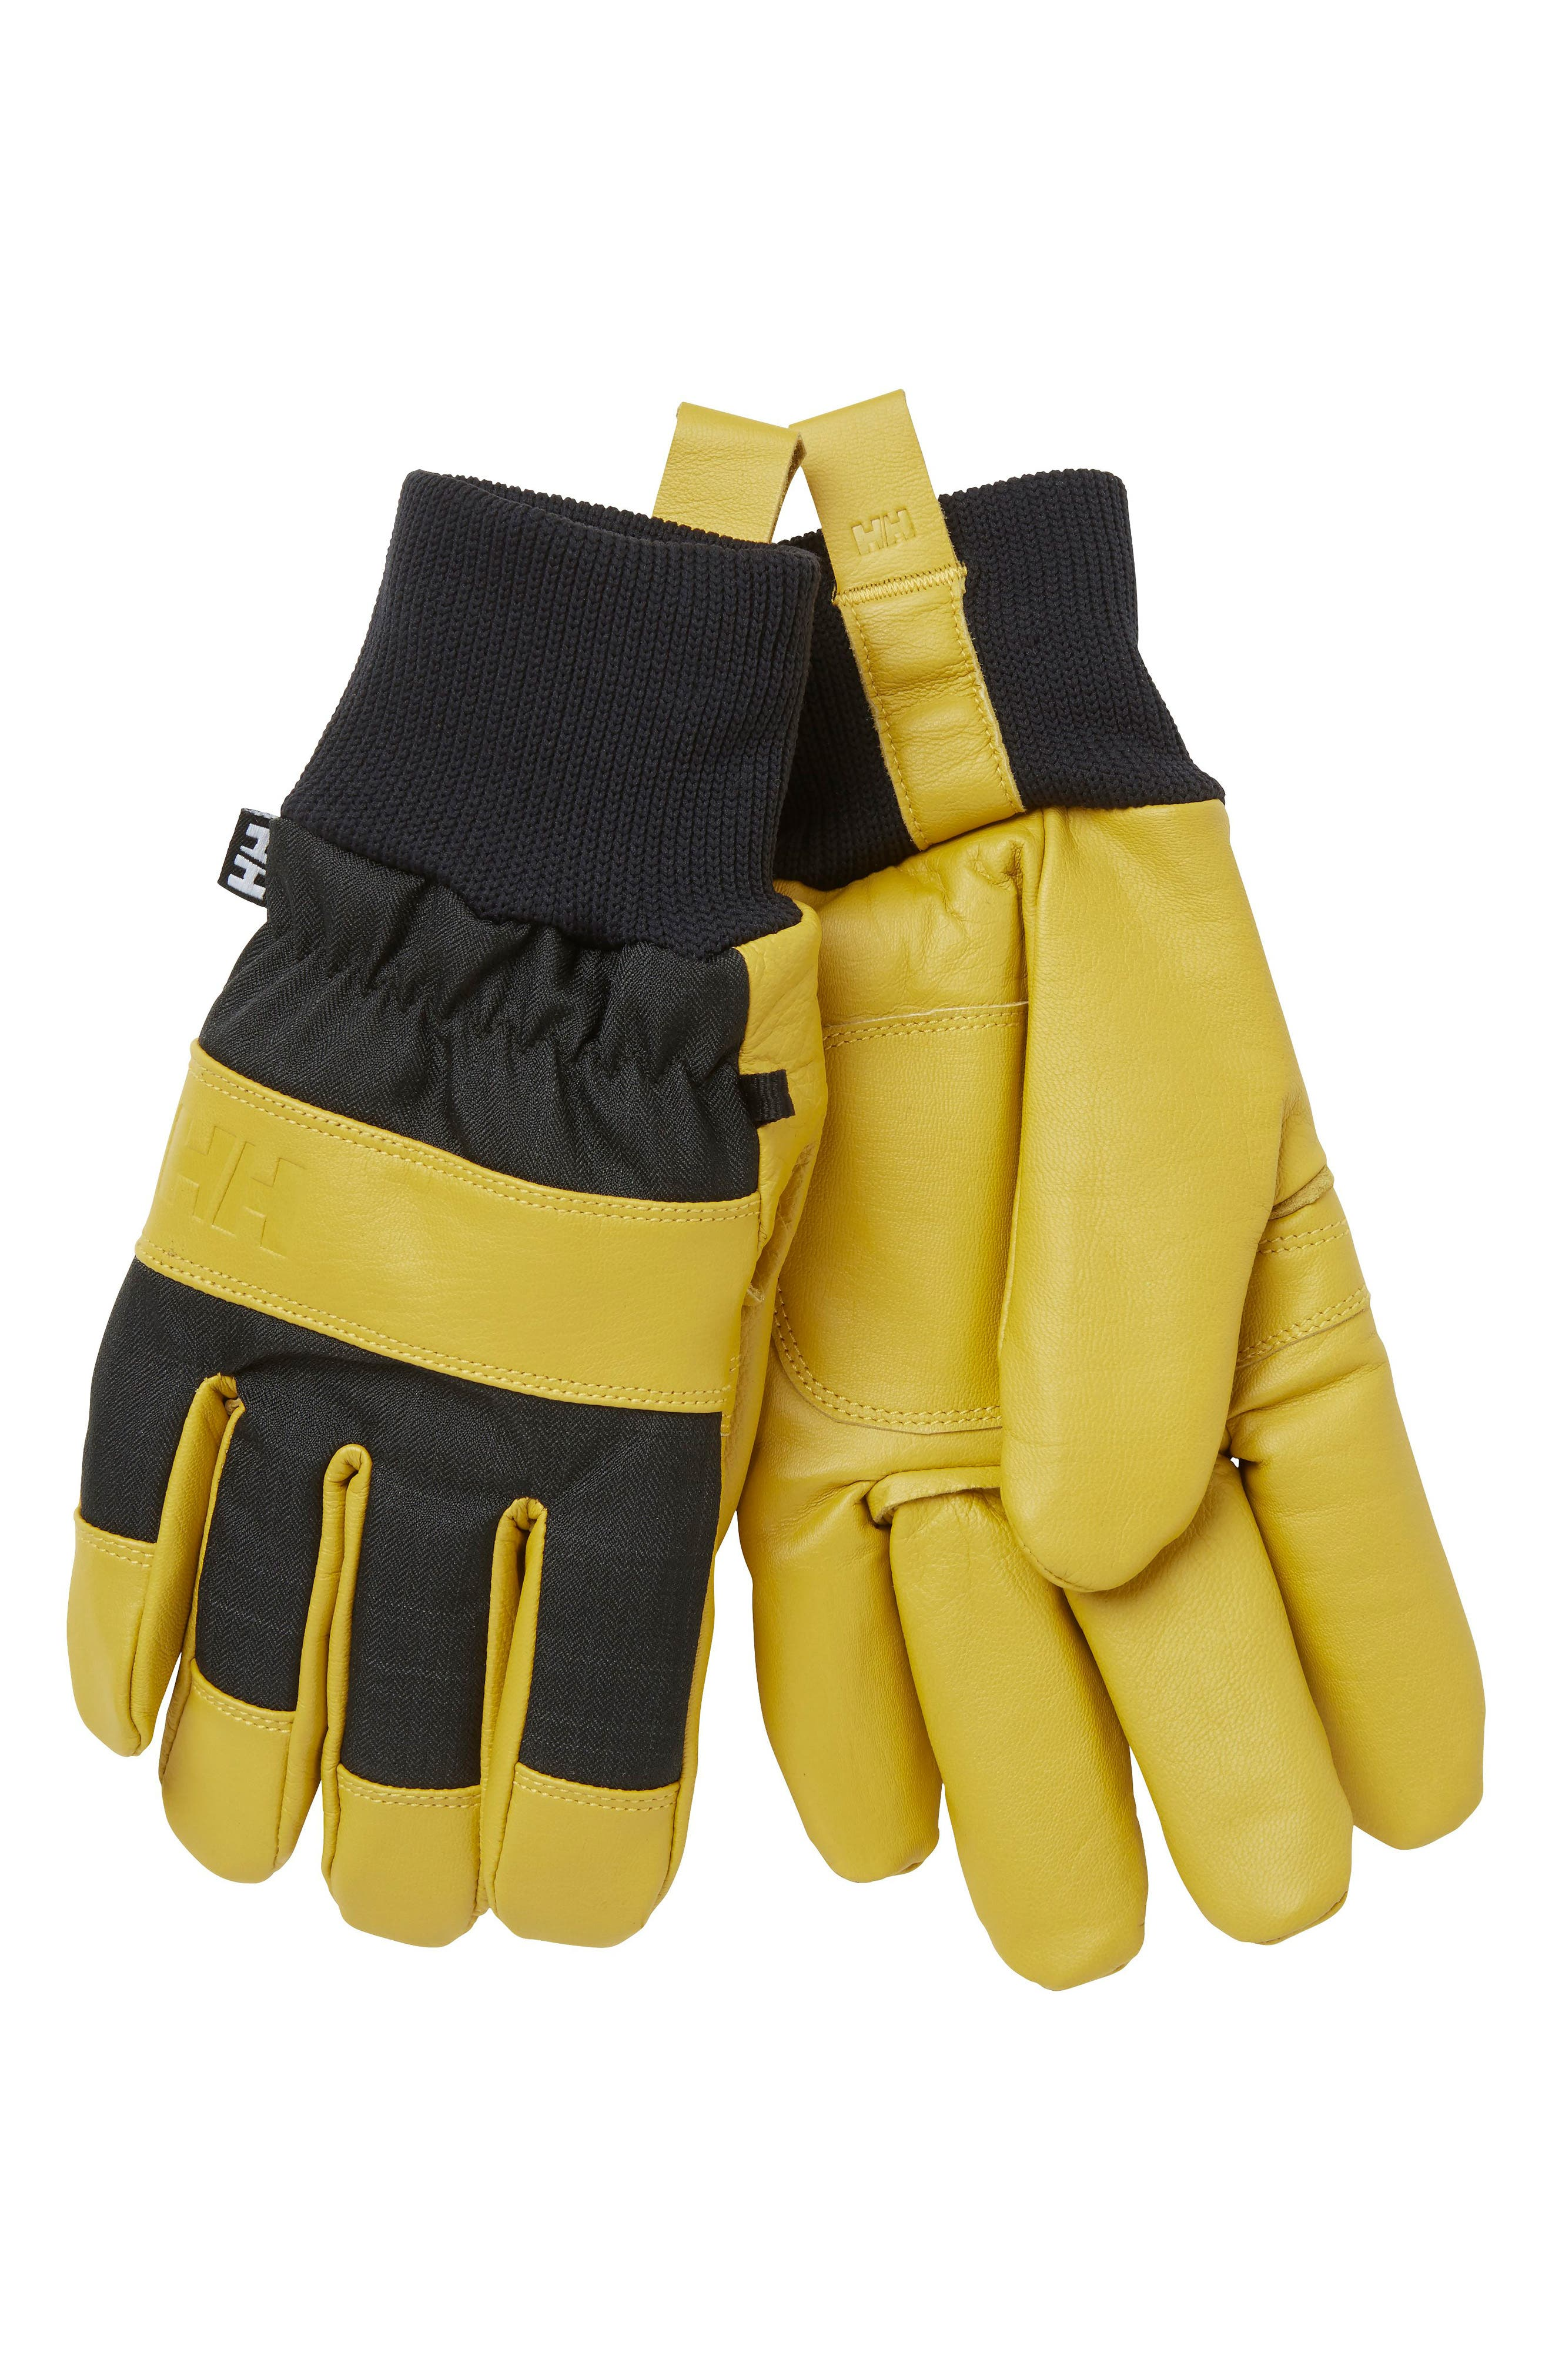 Dawn Patrol Gloves,                             Main thumbnail 1, color,                             451